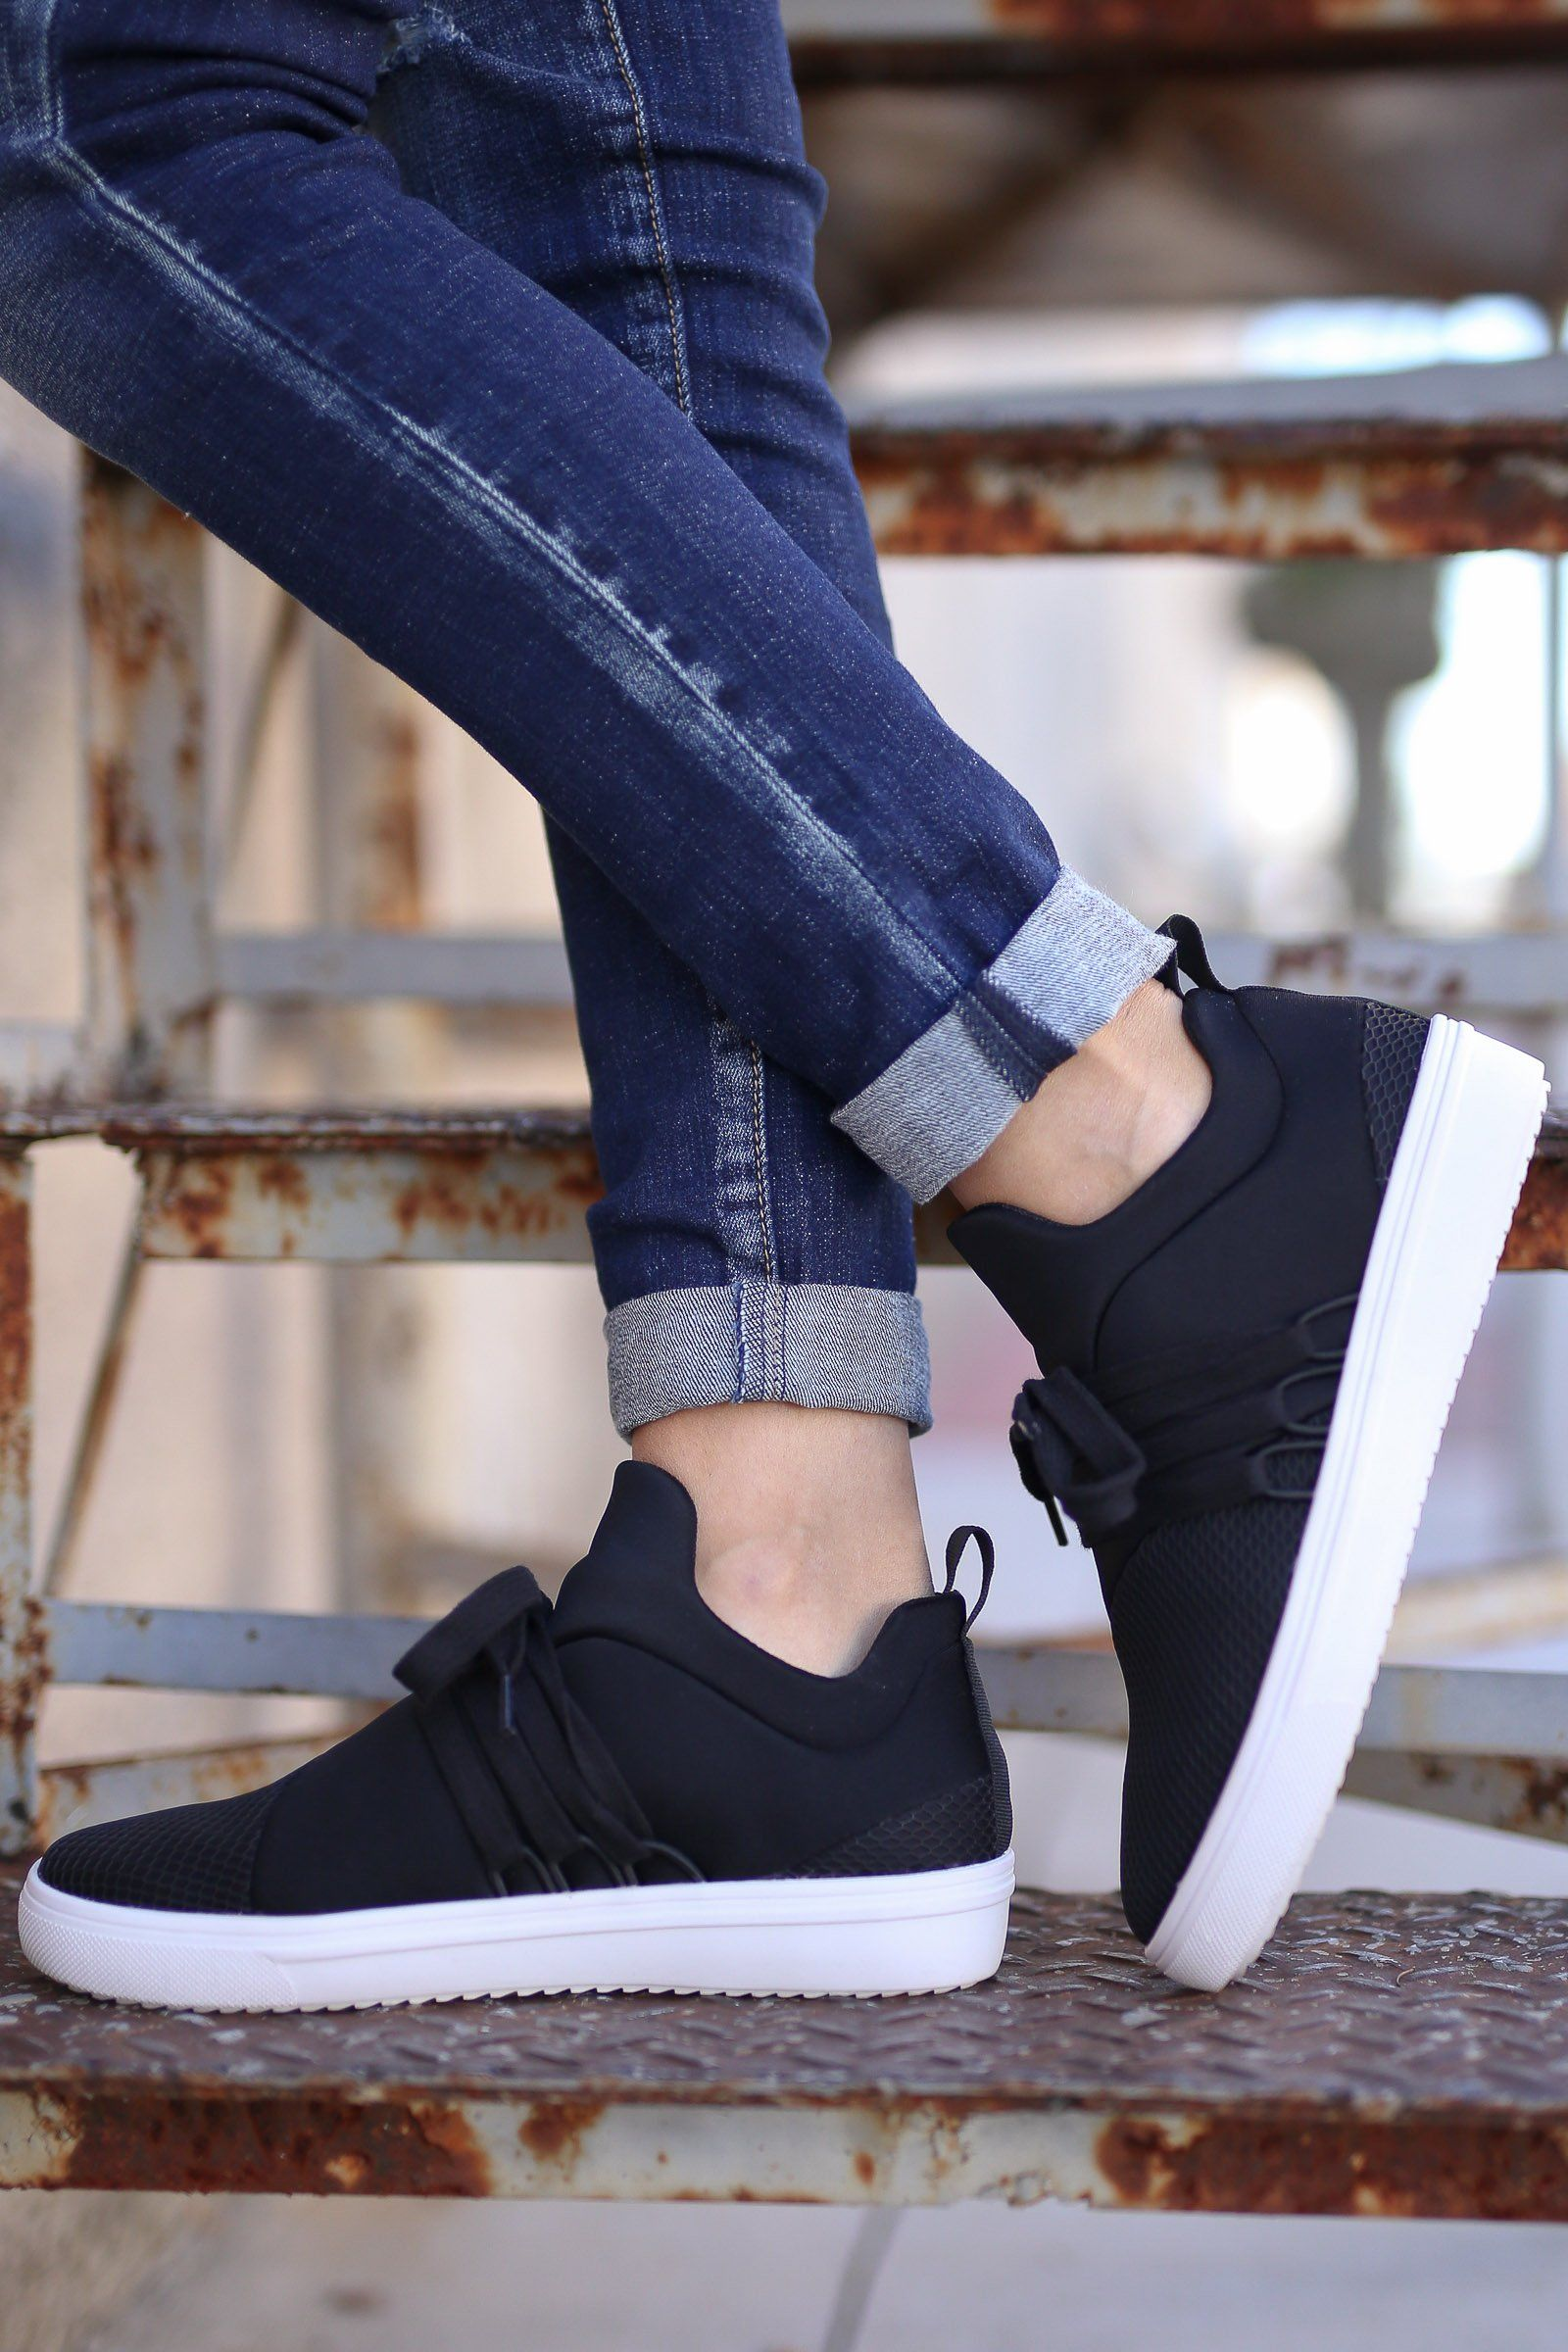 60eaa3395e6 STEVE MADDEN Lancer Sneakers - Black in 2019 | Products | Black ...